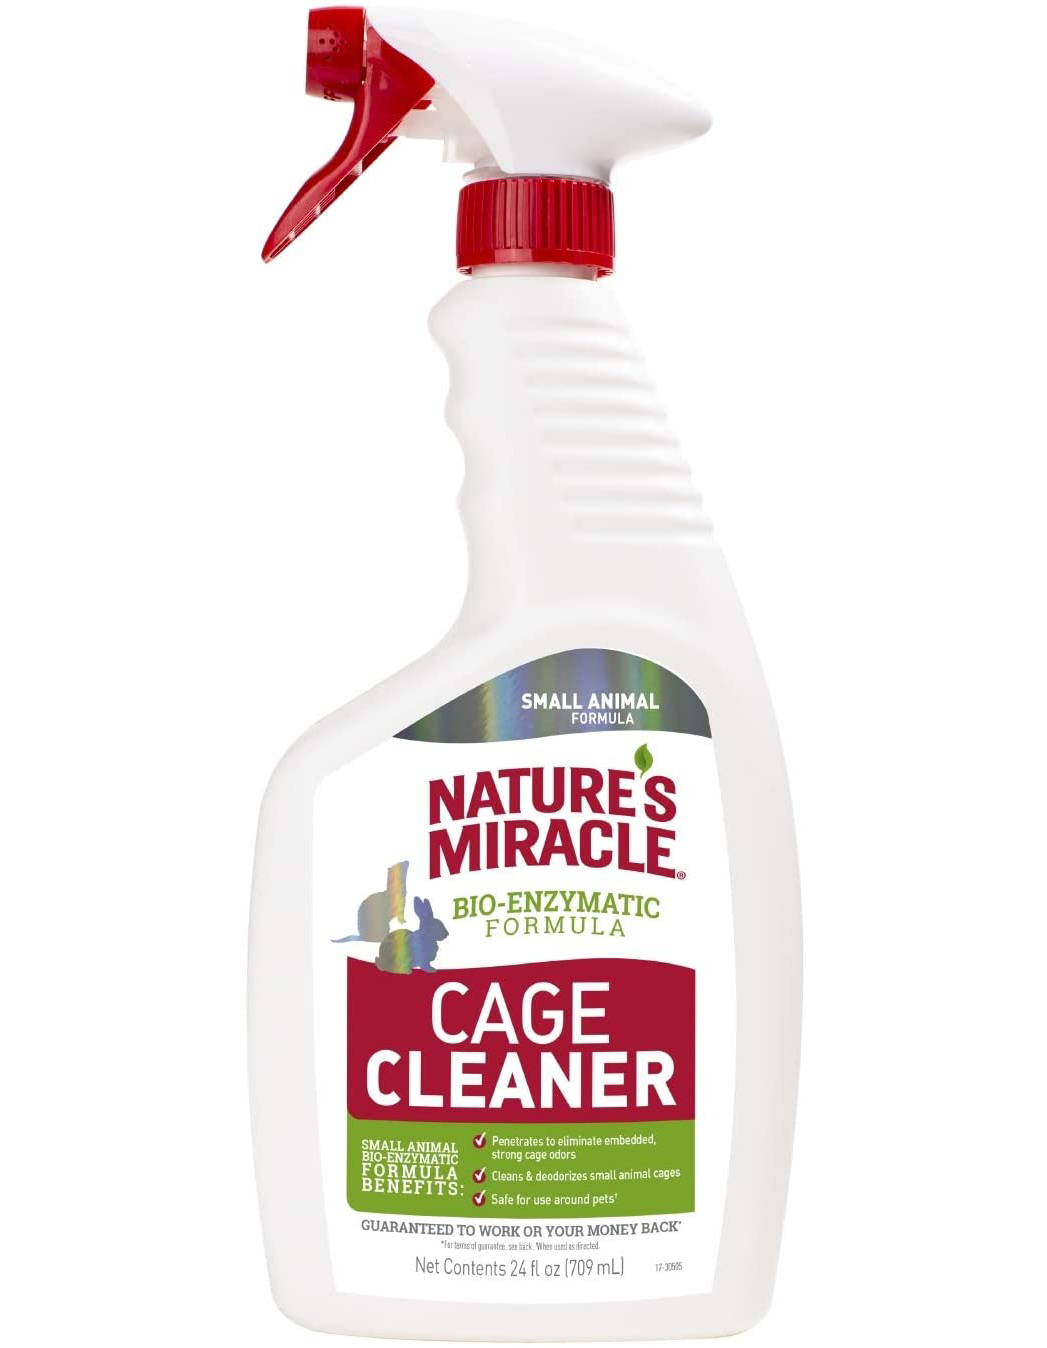 Cage Cleaner